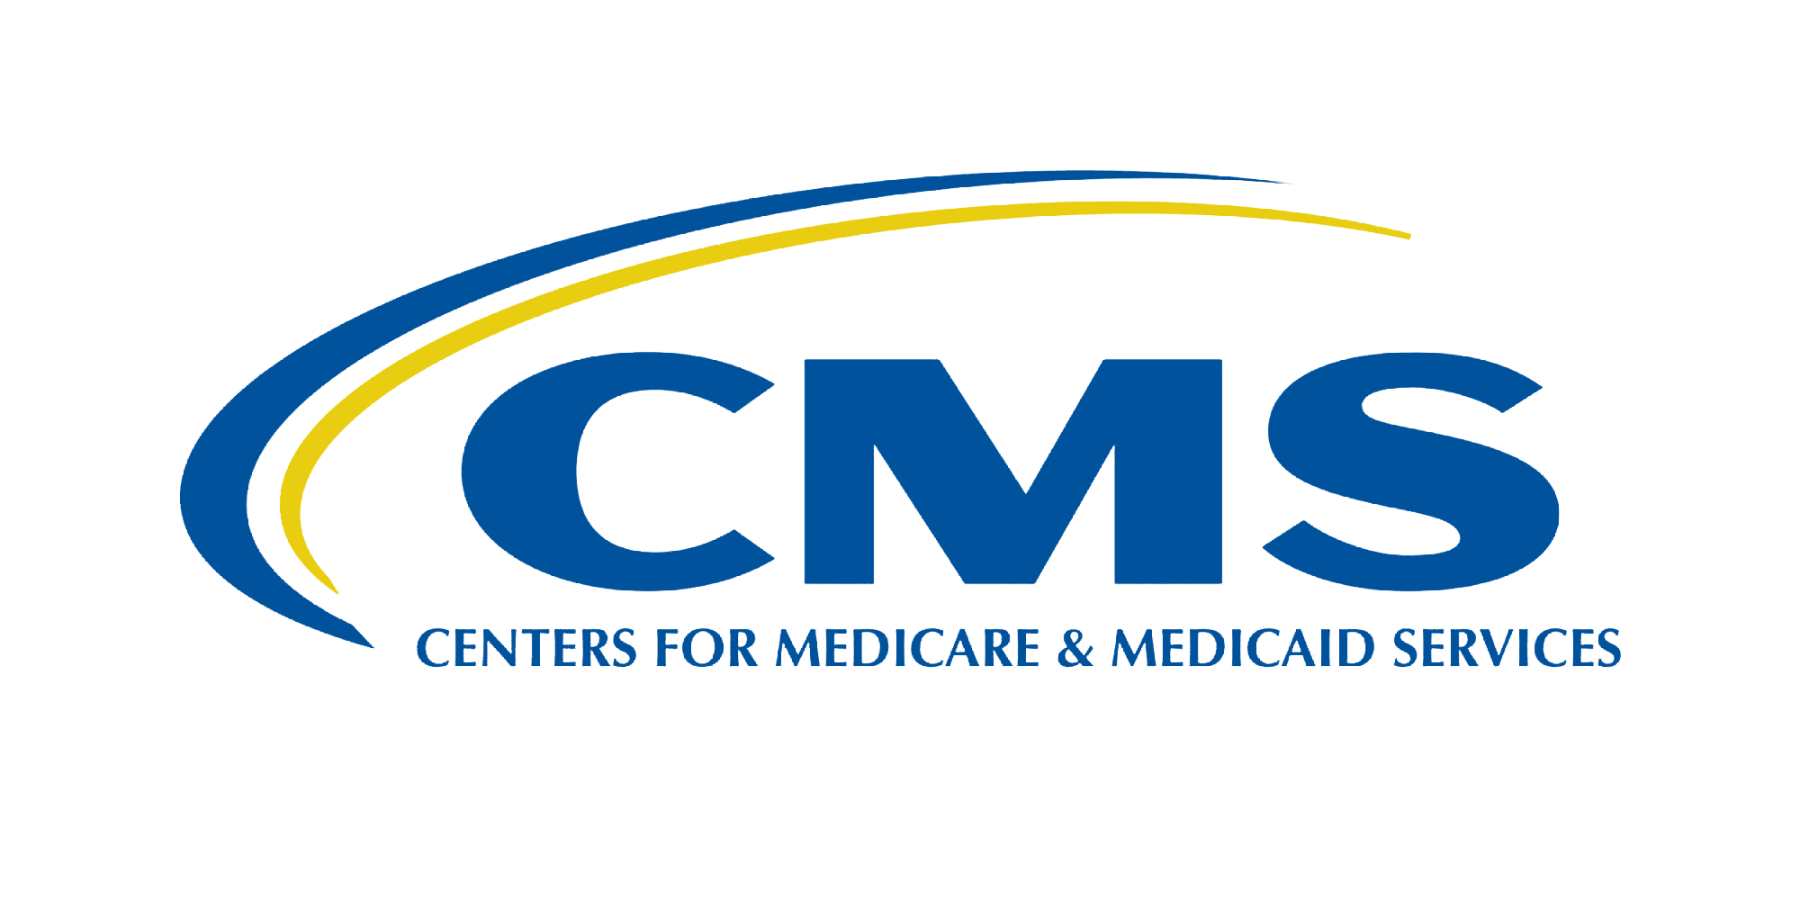 Centers_for_Medicare_and_Medicaid_Services_logo_2014.png